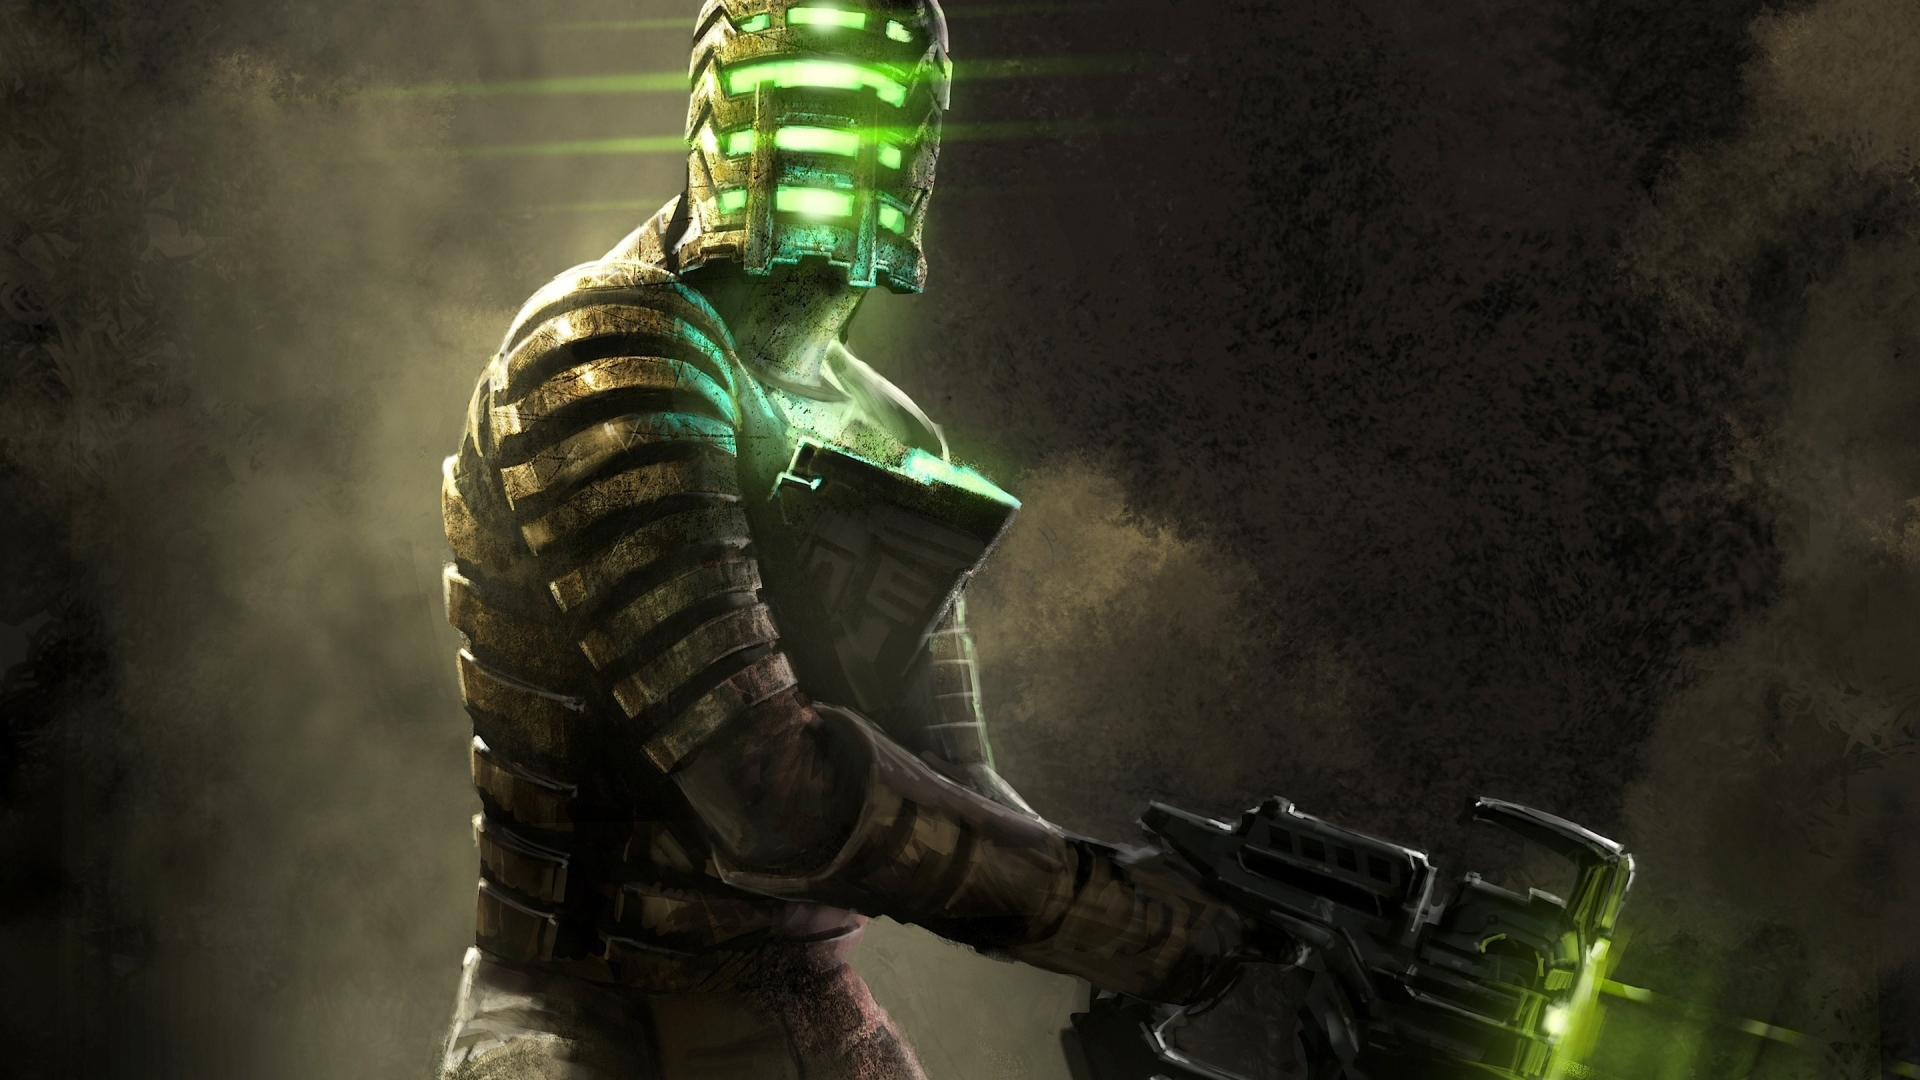 1920x1080 Dead Space 2 Art Characters 1080p Laptop Full Hd